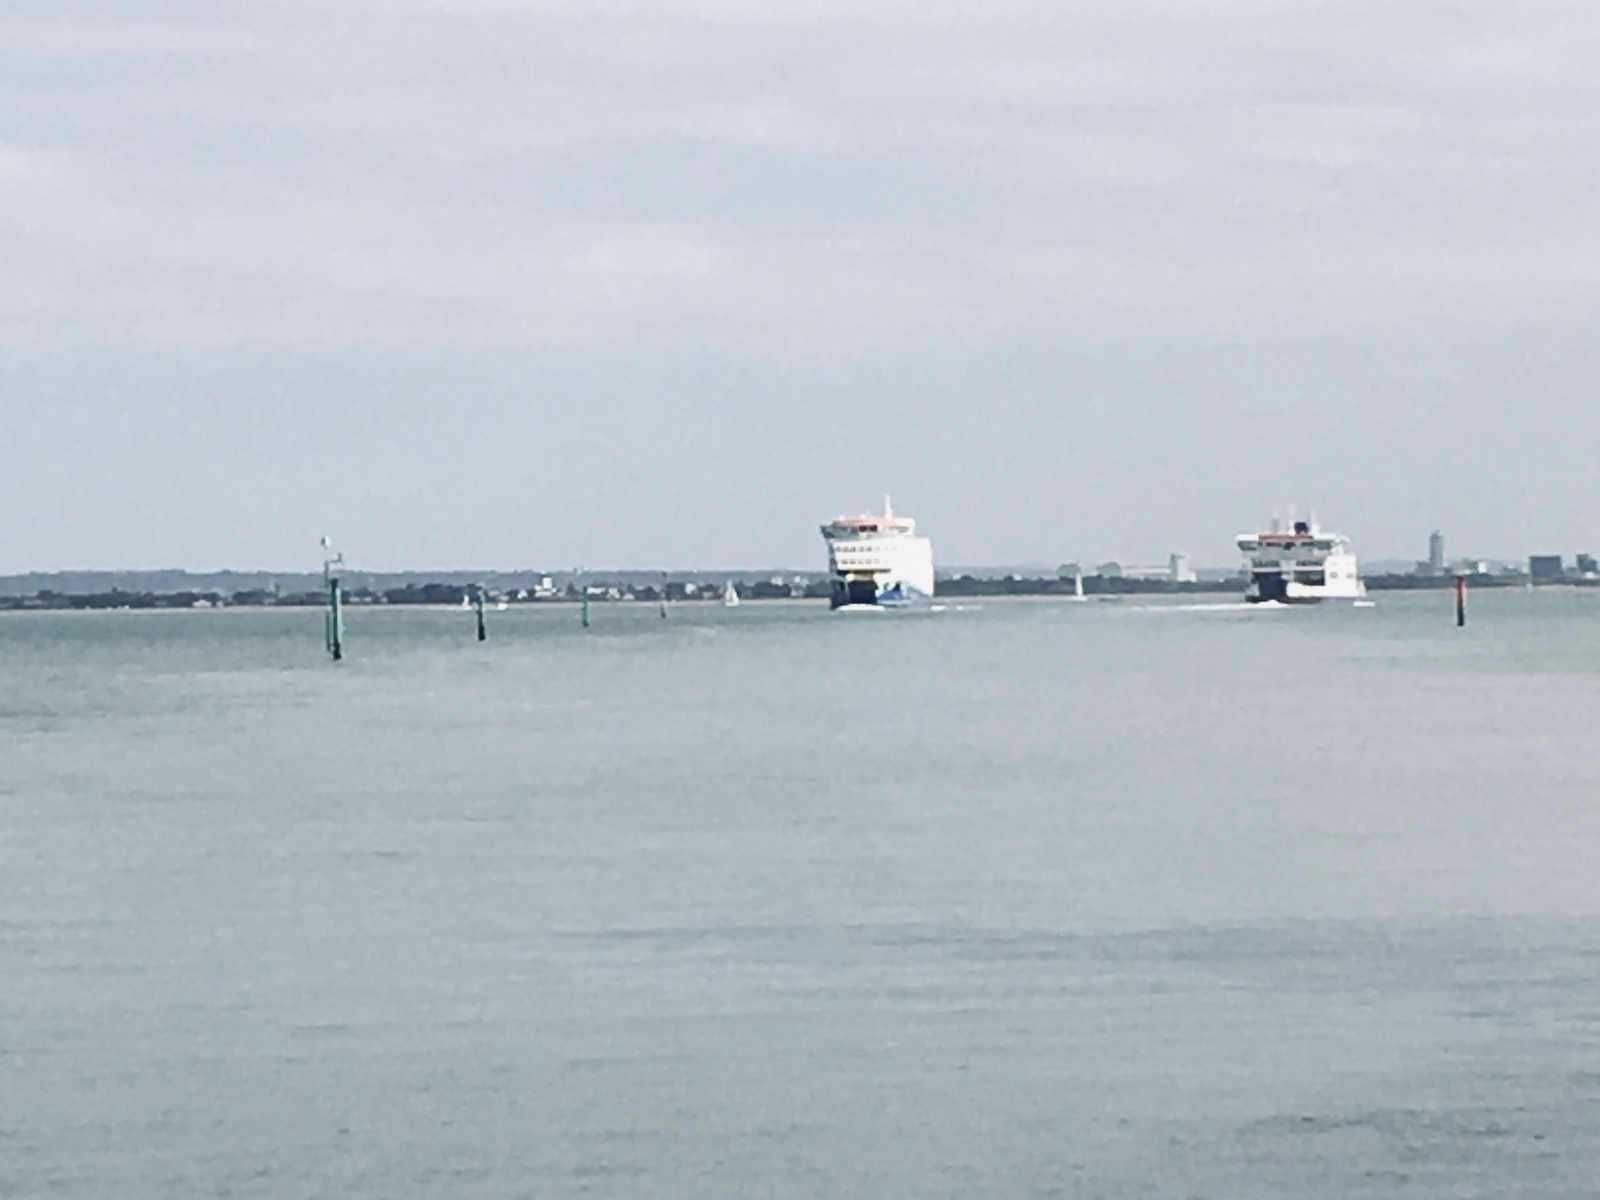 Isle of Wight ferries off Fishbourne.